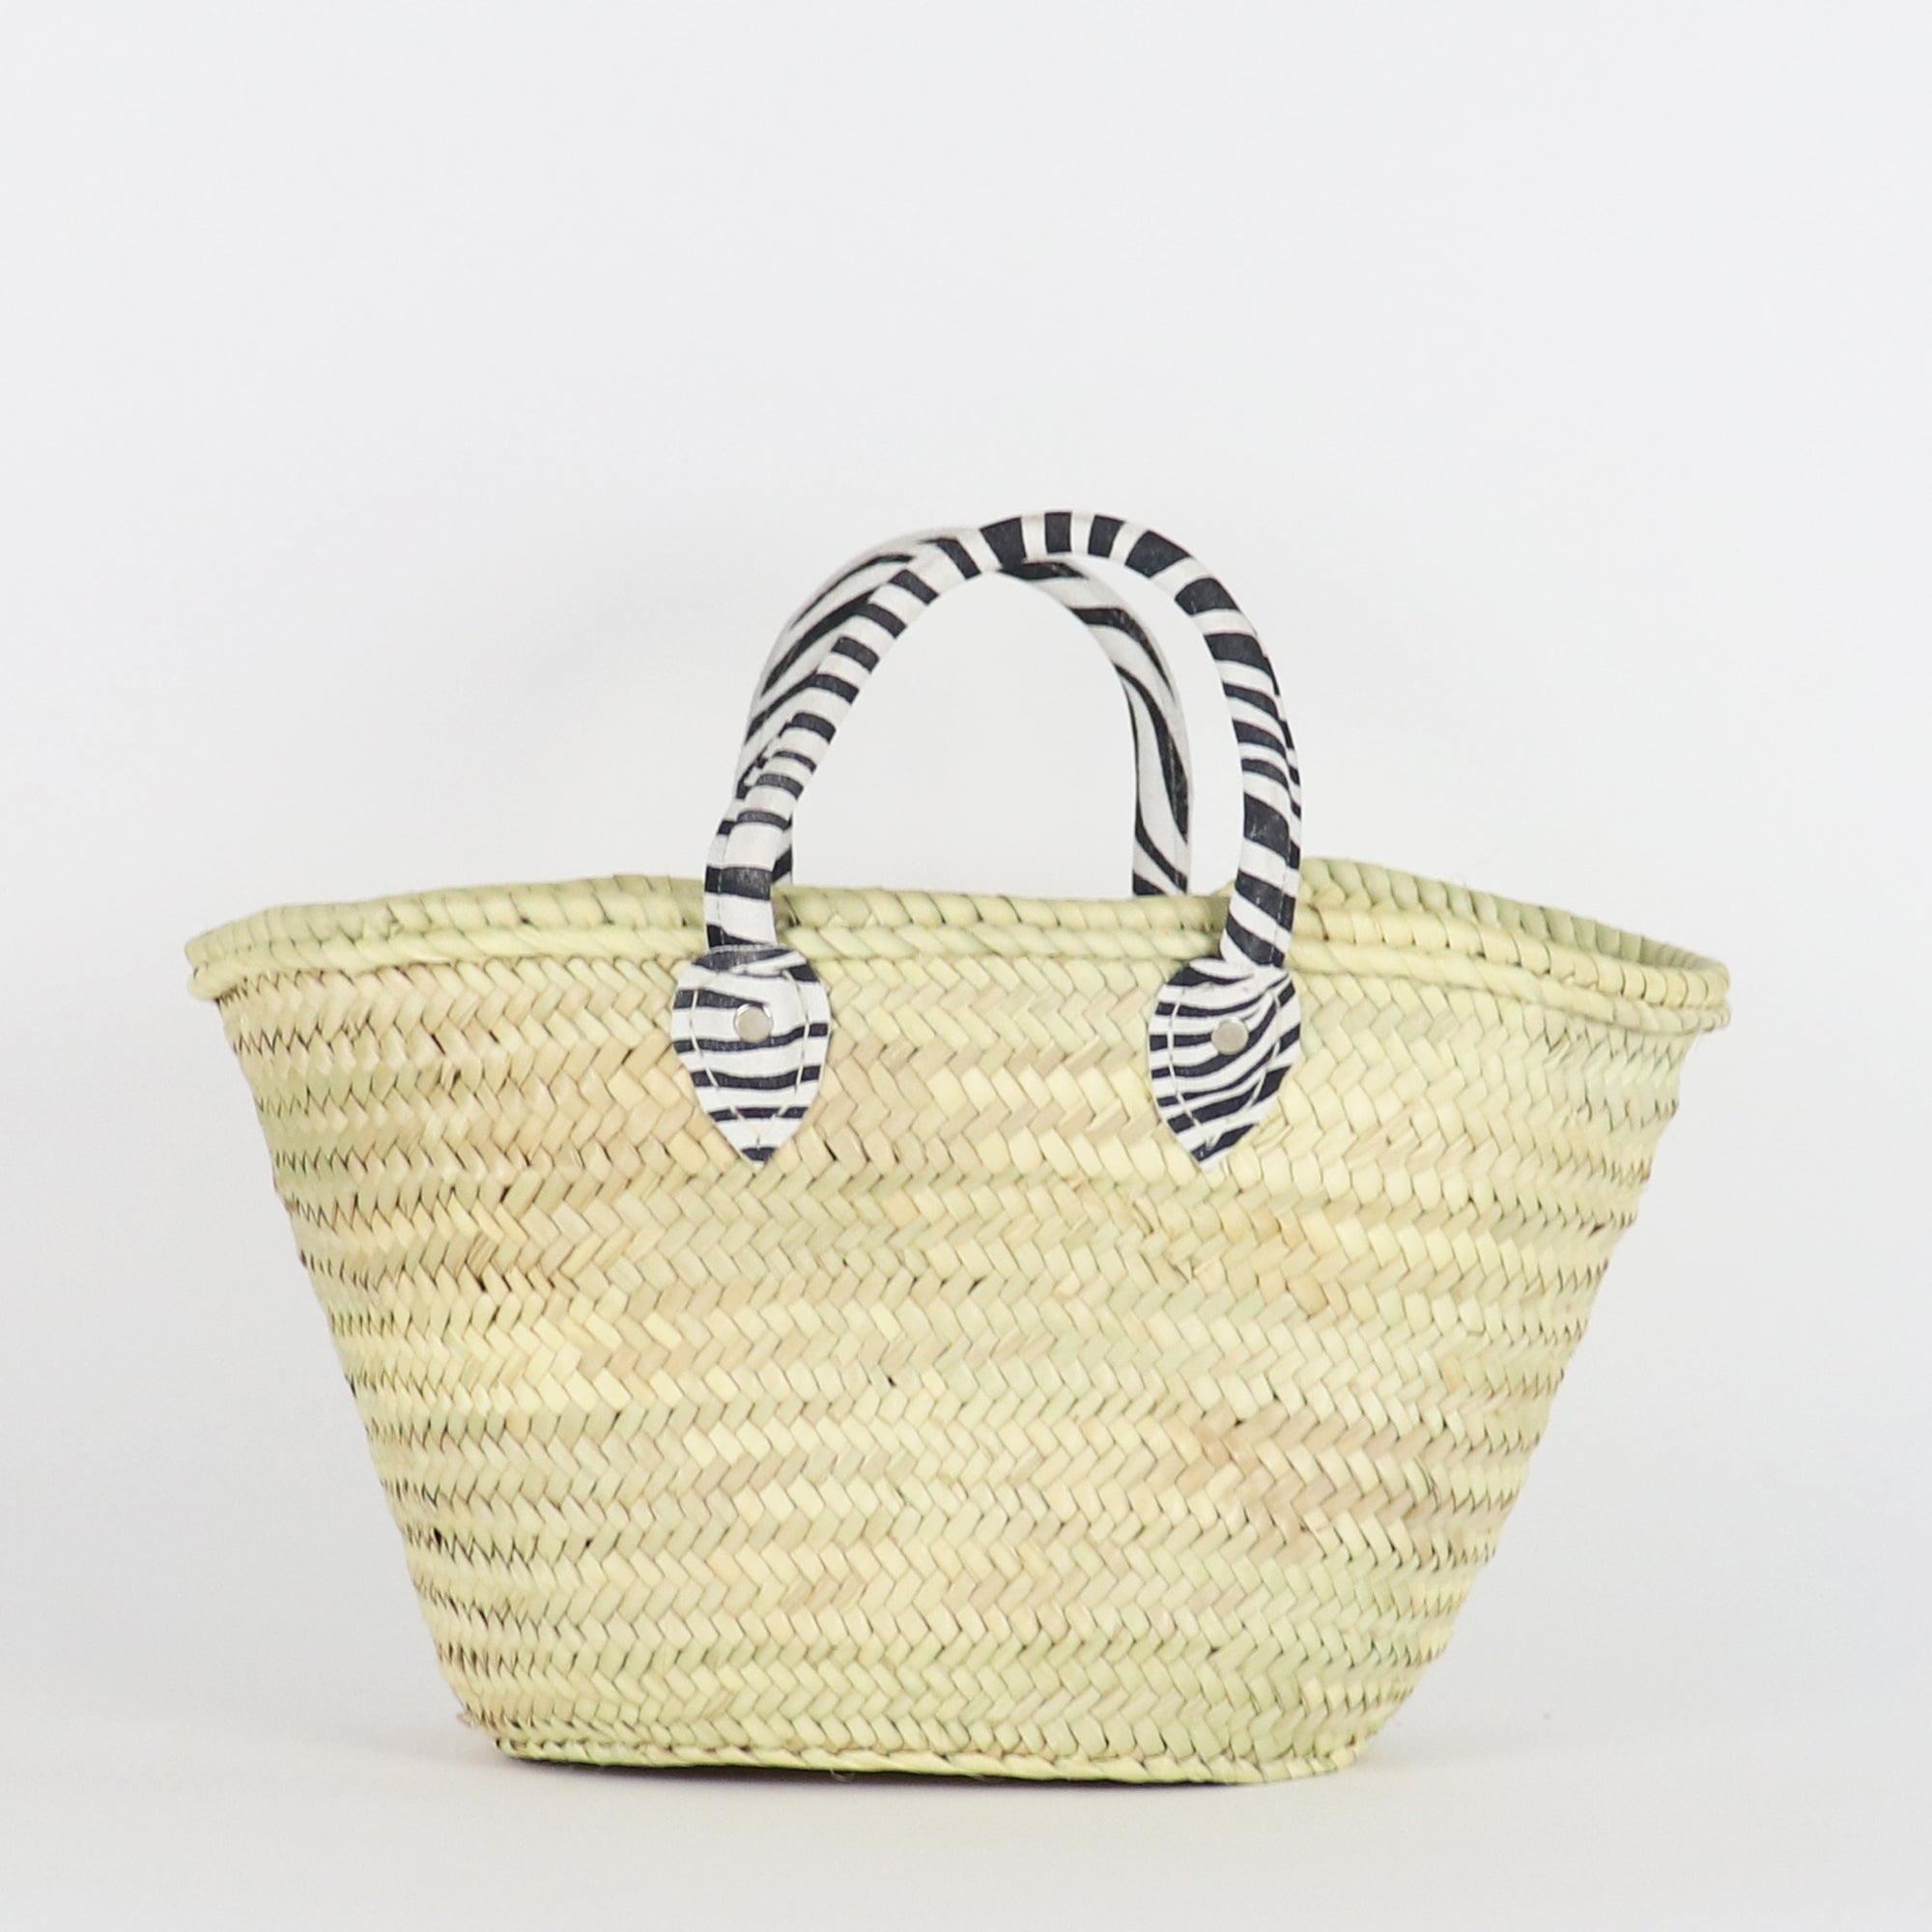 Zebra straw bag, French Basket, Beach, Farmers market, Sustainable bag, Classic, Basic